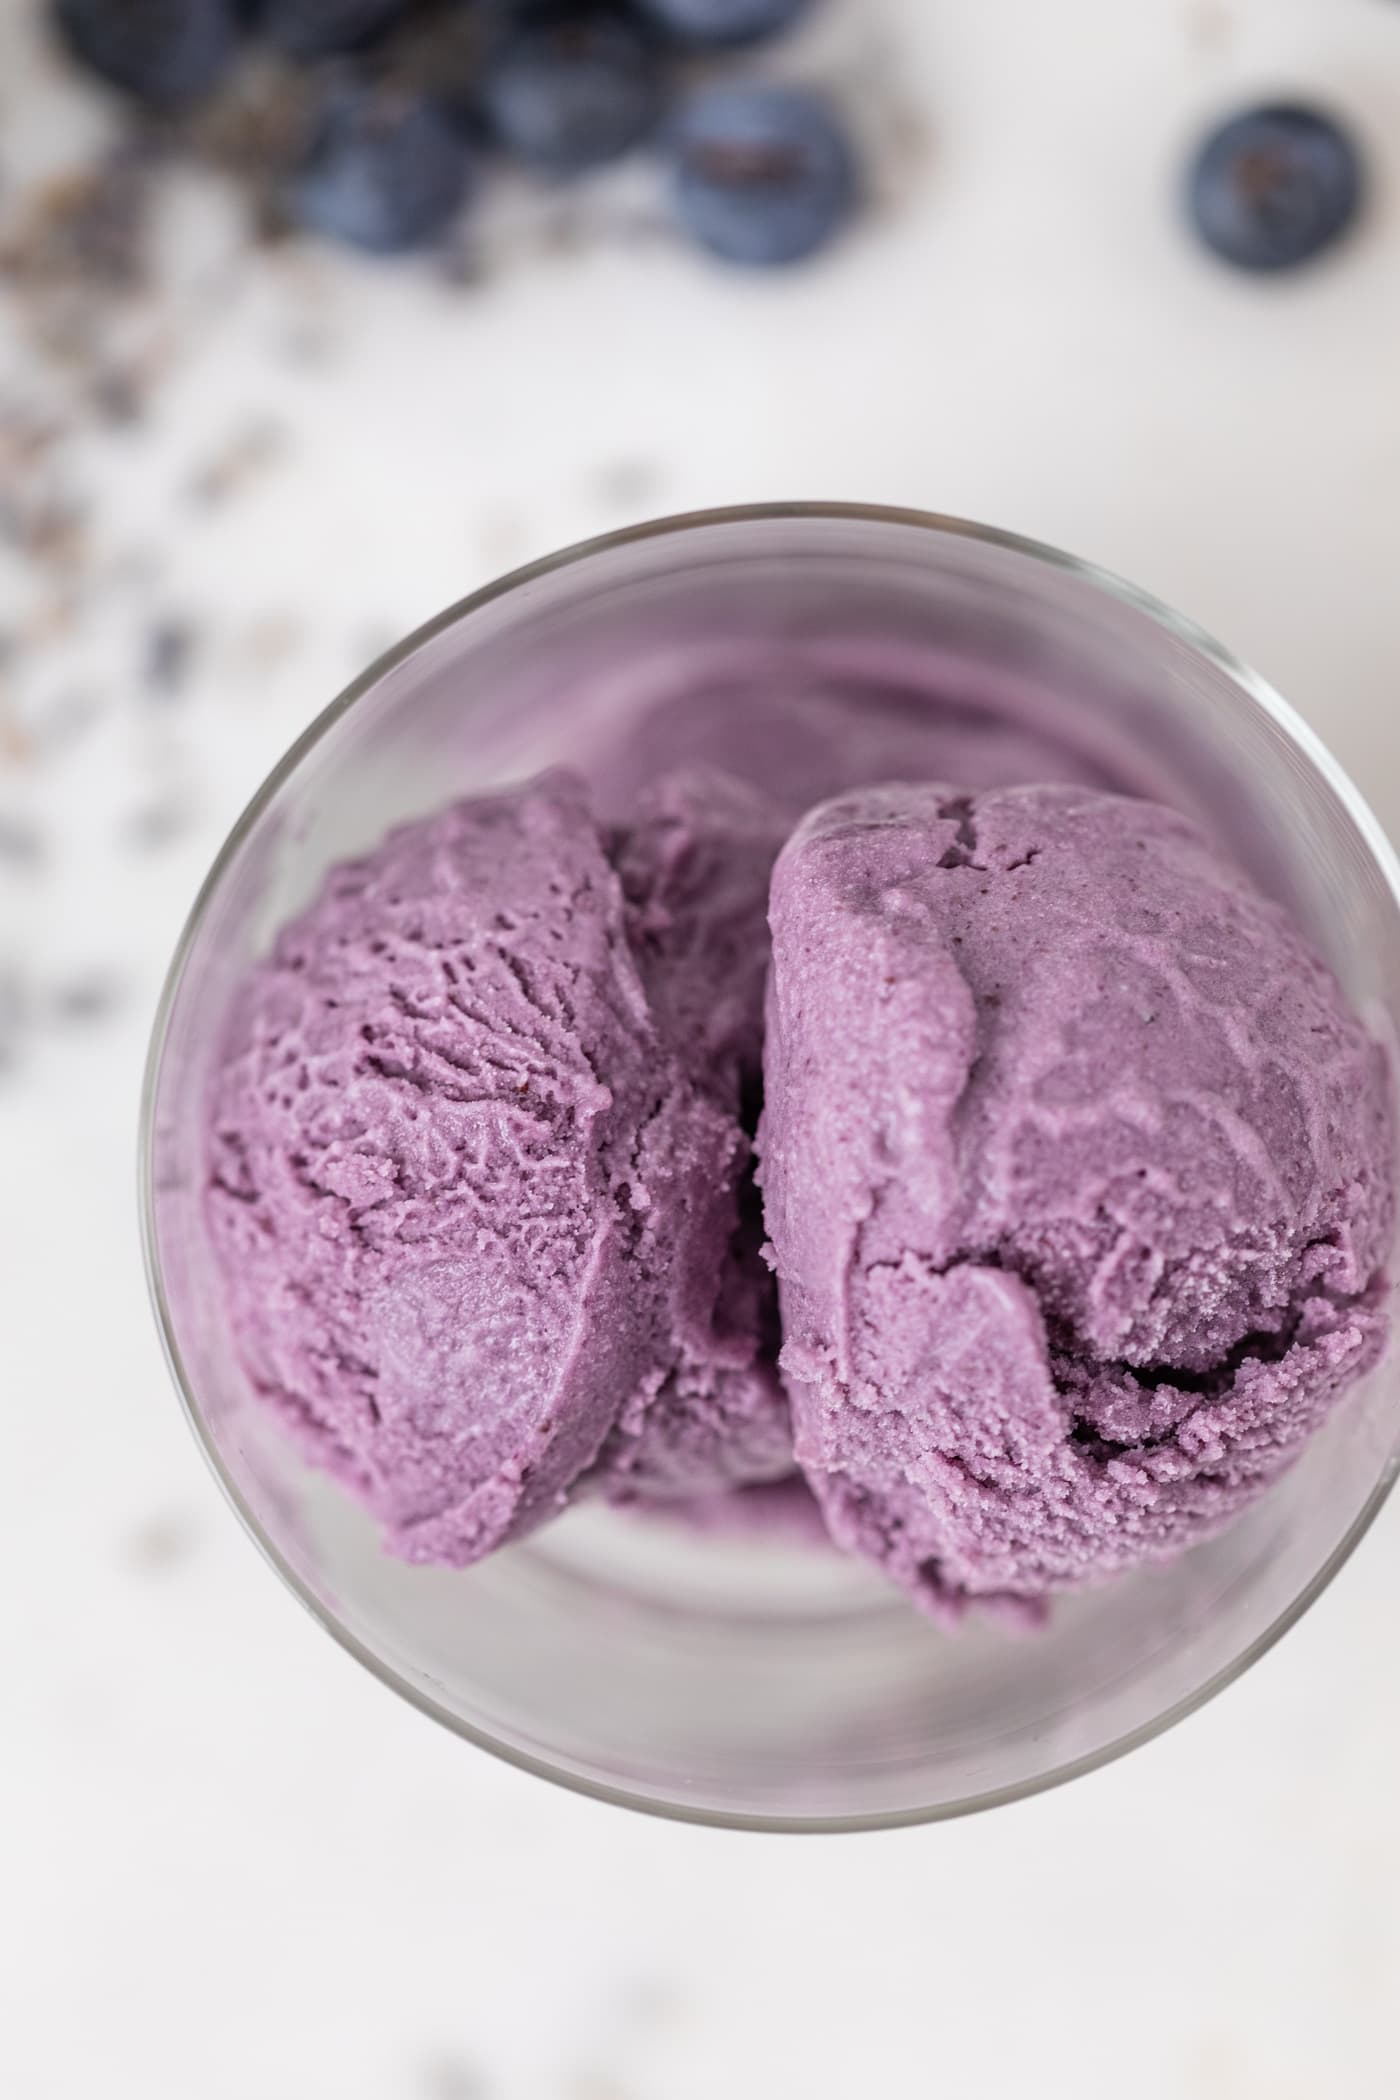 Top down view of purple ice cream in glass container with blueberries and dried lavender on marble surface